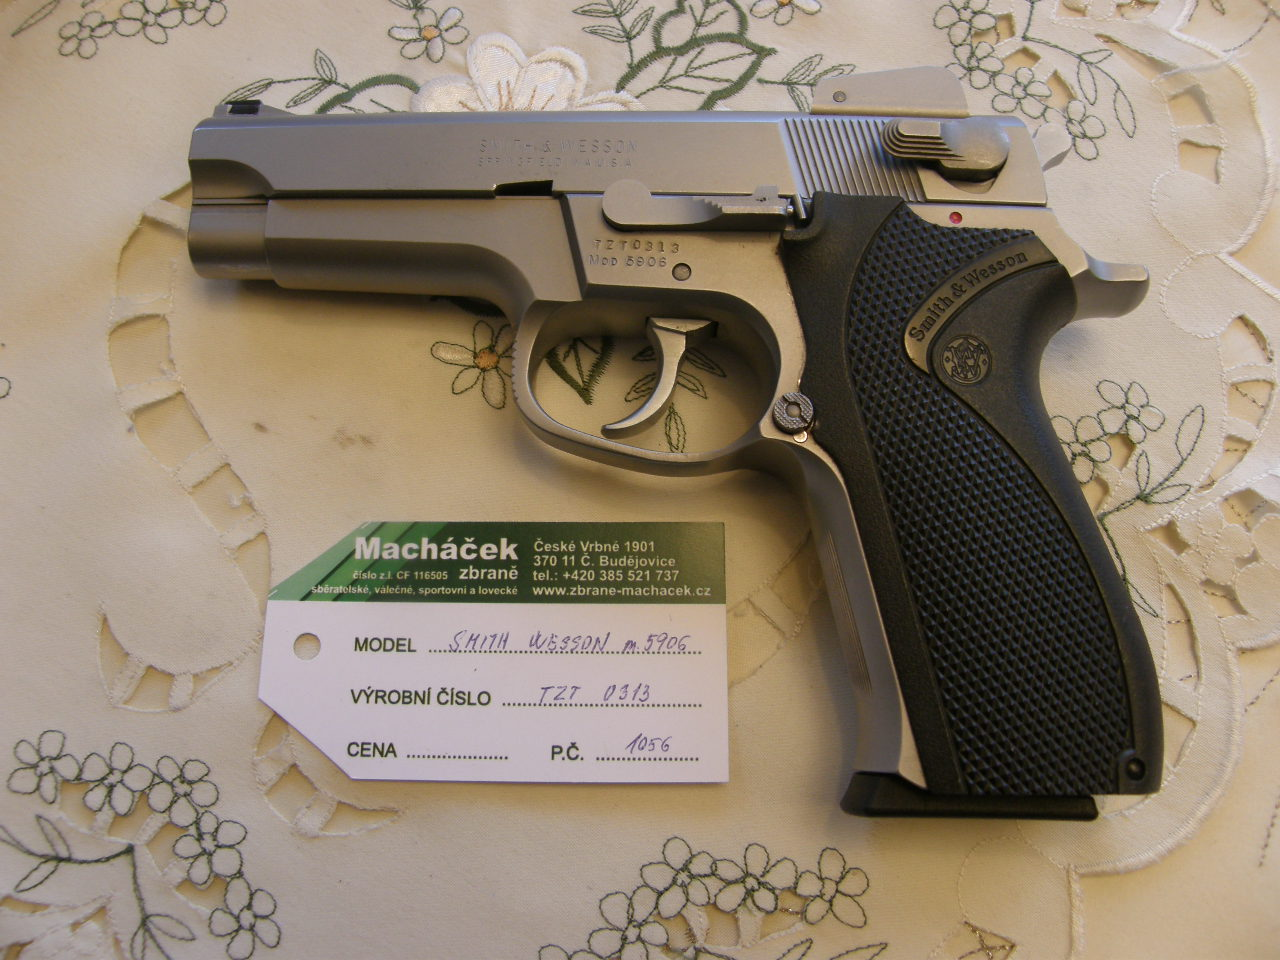 Pistole Smith Wesson Mod. 5906 v.č.TZT 3013 r. 9 mm Luger